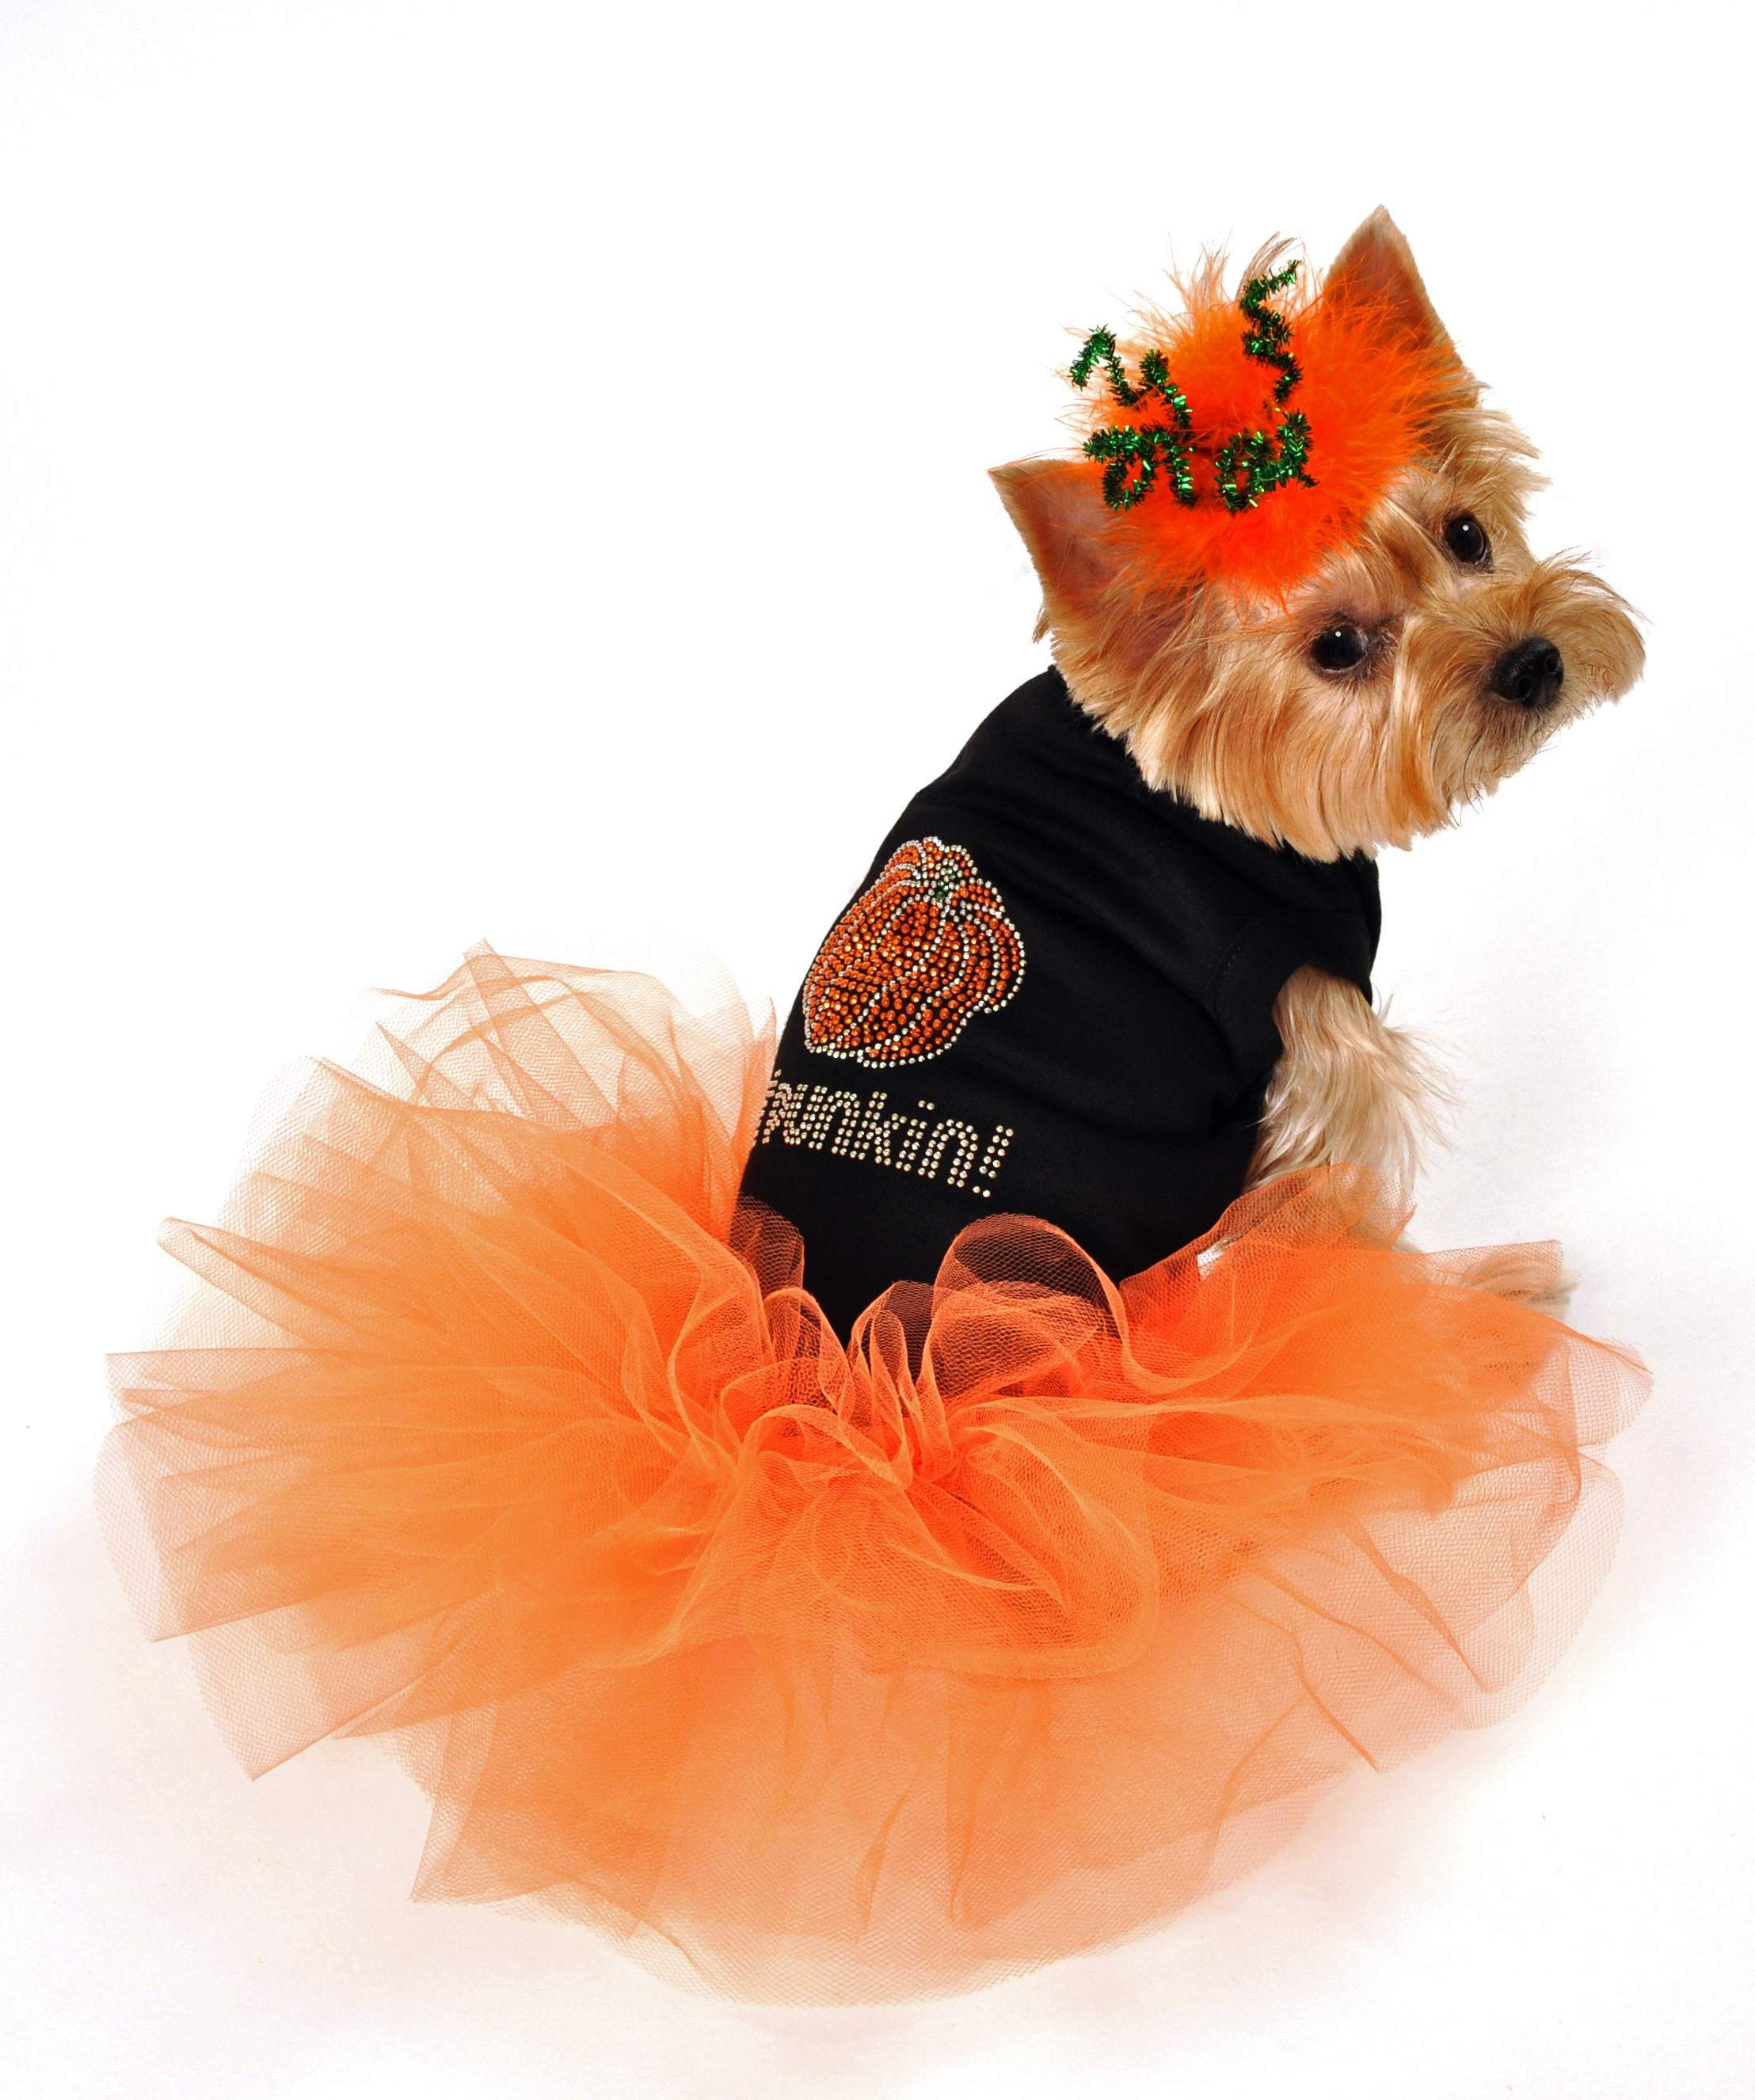 Sweet dog outfit for fall! (With images) Dog halloween